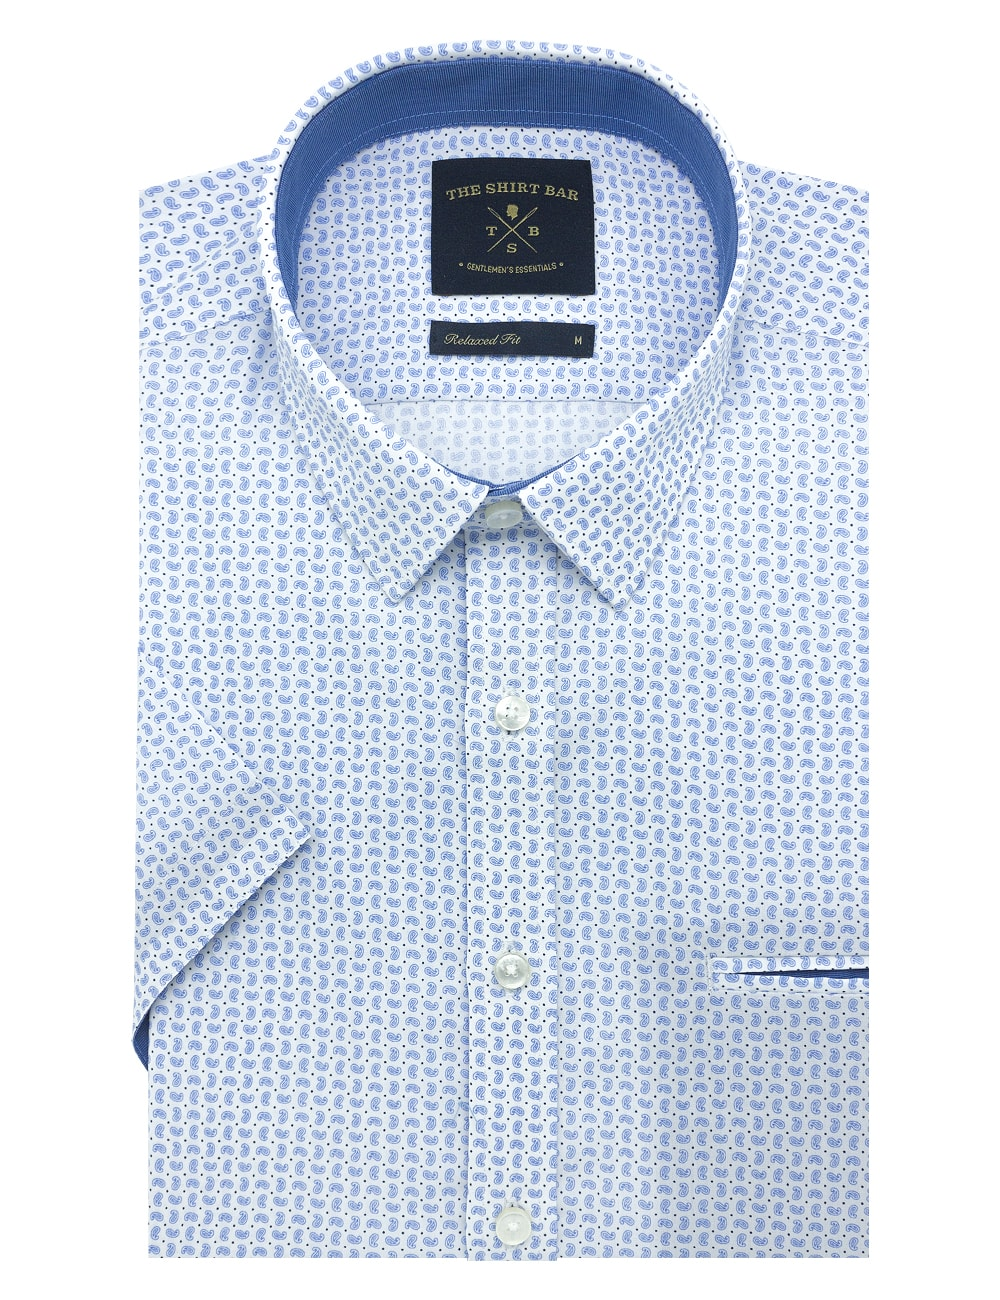 White with Blue Paisley Print Custom / Relaxed Fit Short Sleeve Shirt – RF9SNB3.19